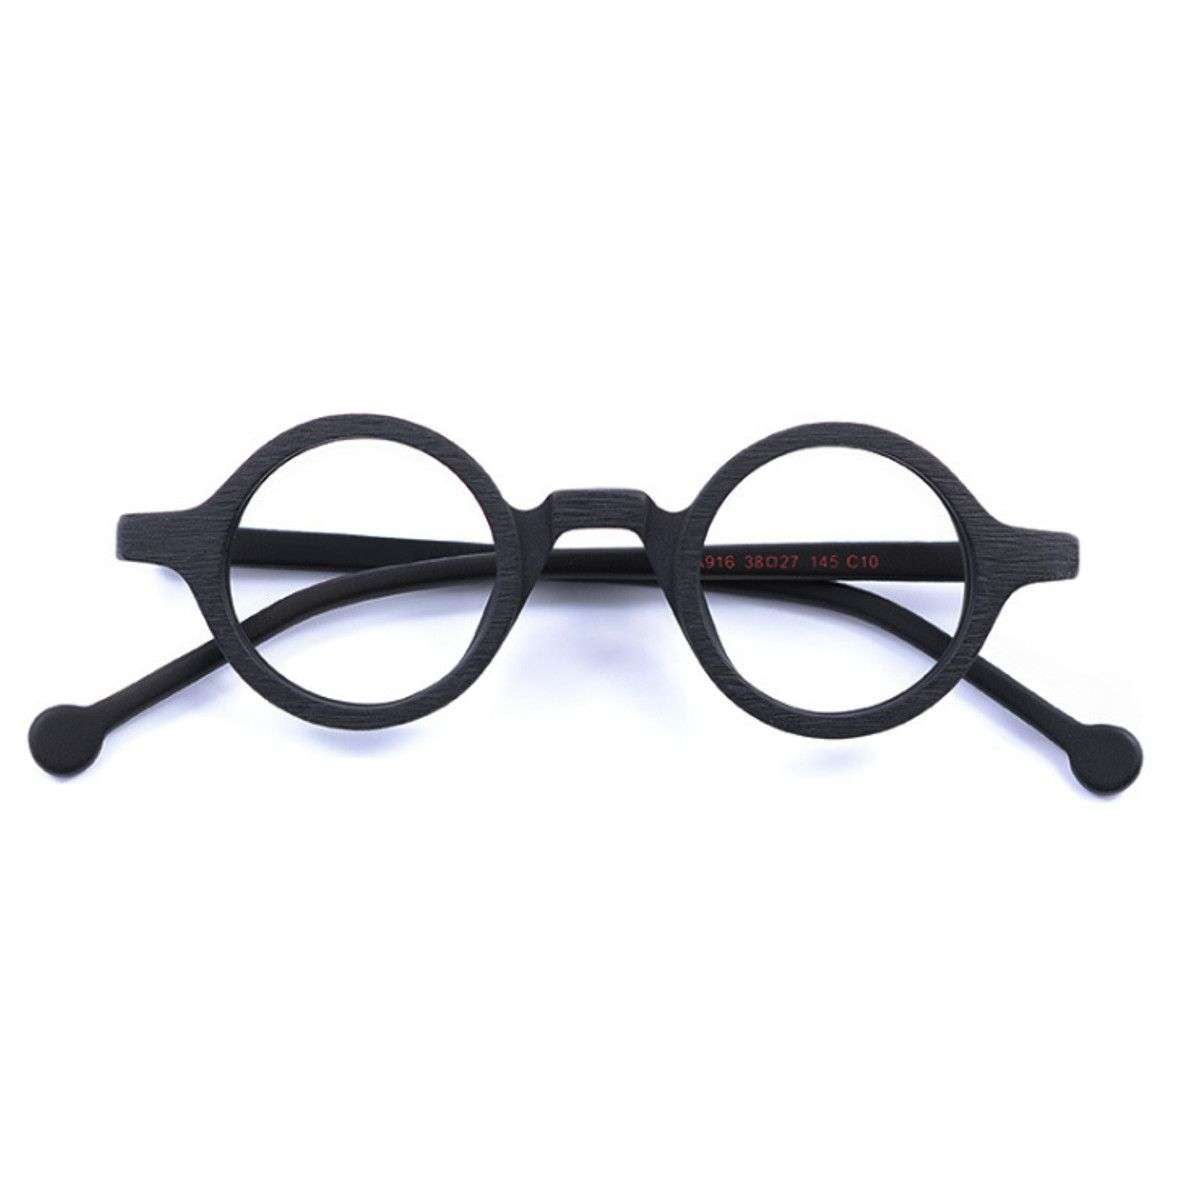 55d712a25fc 38mm Vintage Small Round Eyeglass Frames Acetate Rx-able Spectacles Glasses